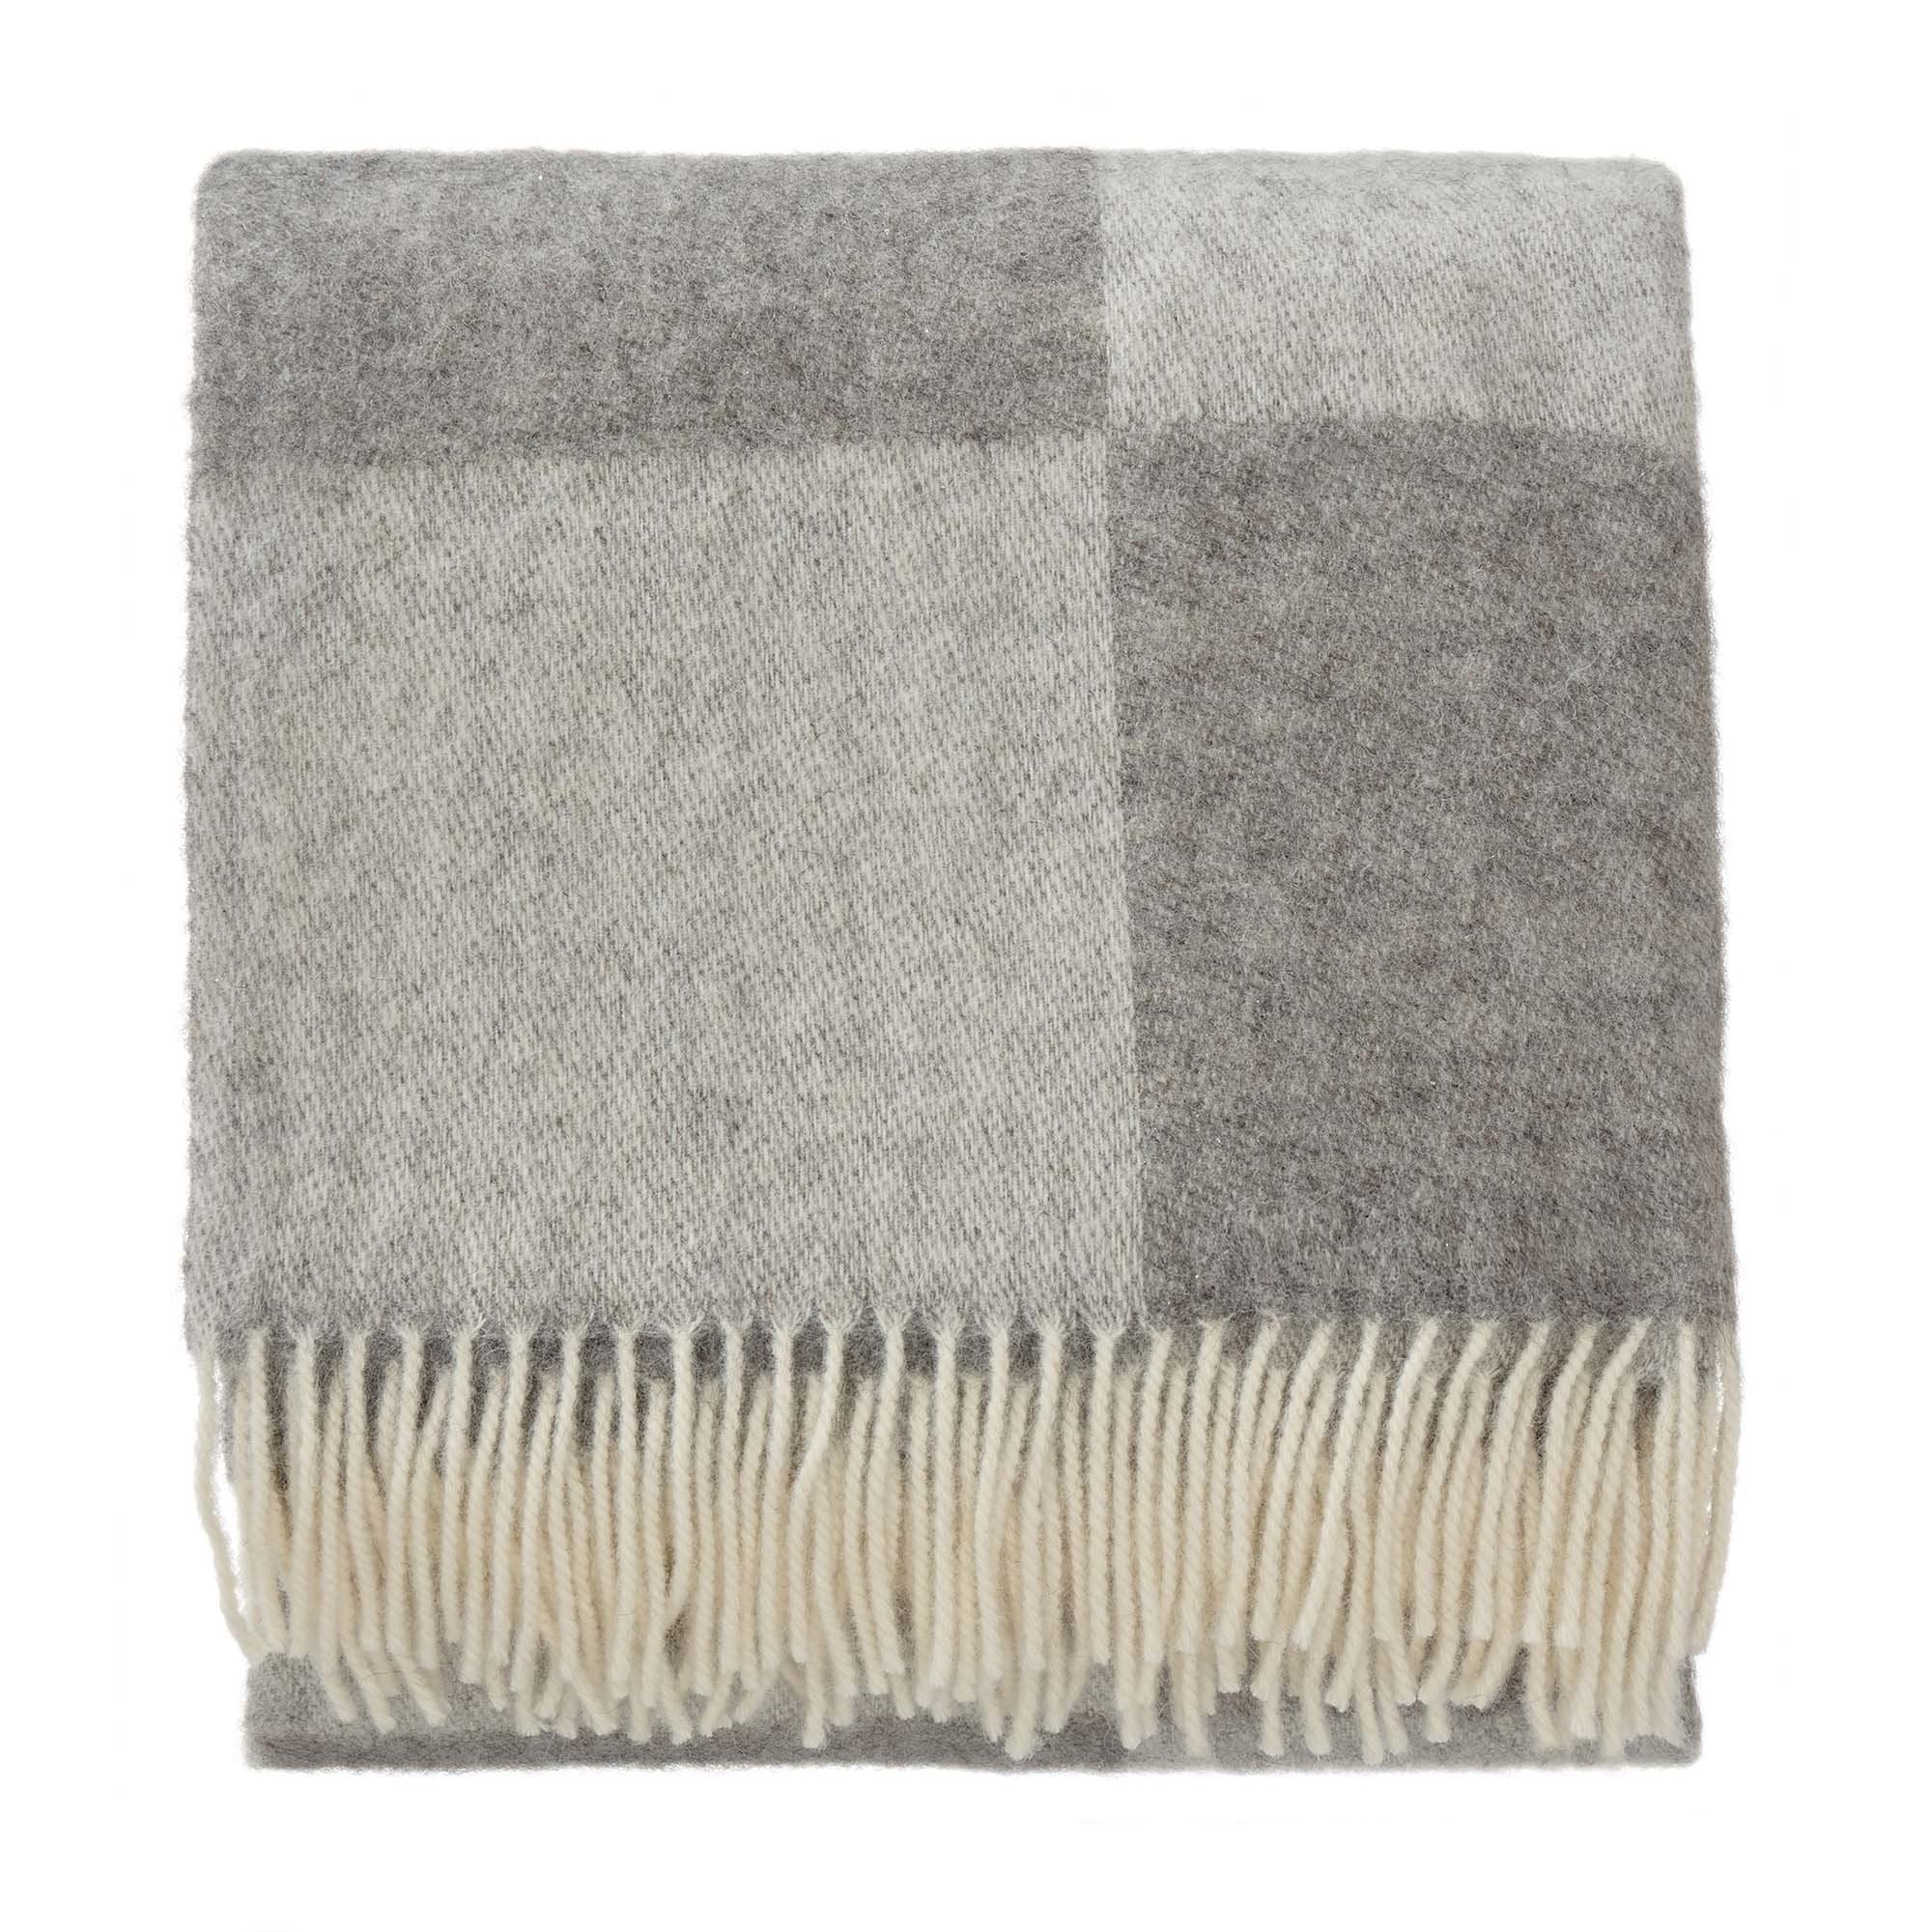 Saskatoon blanket, grey & light grey & grey, 100% wool